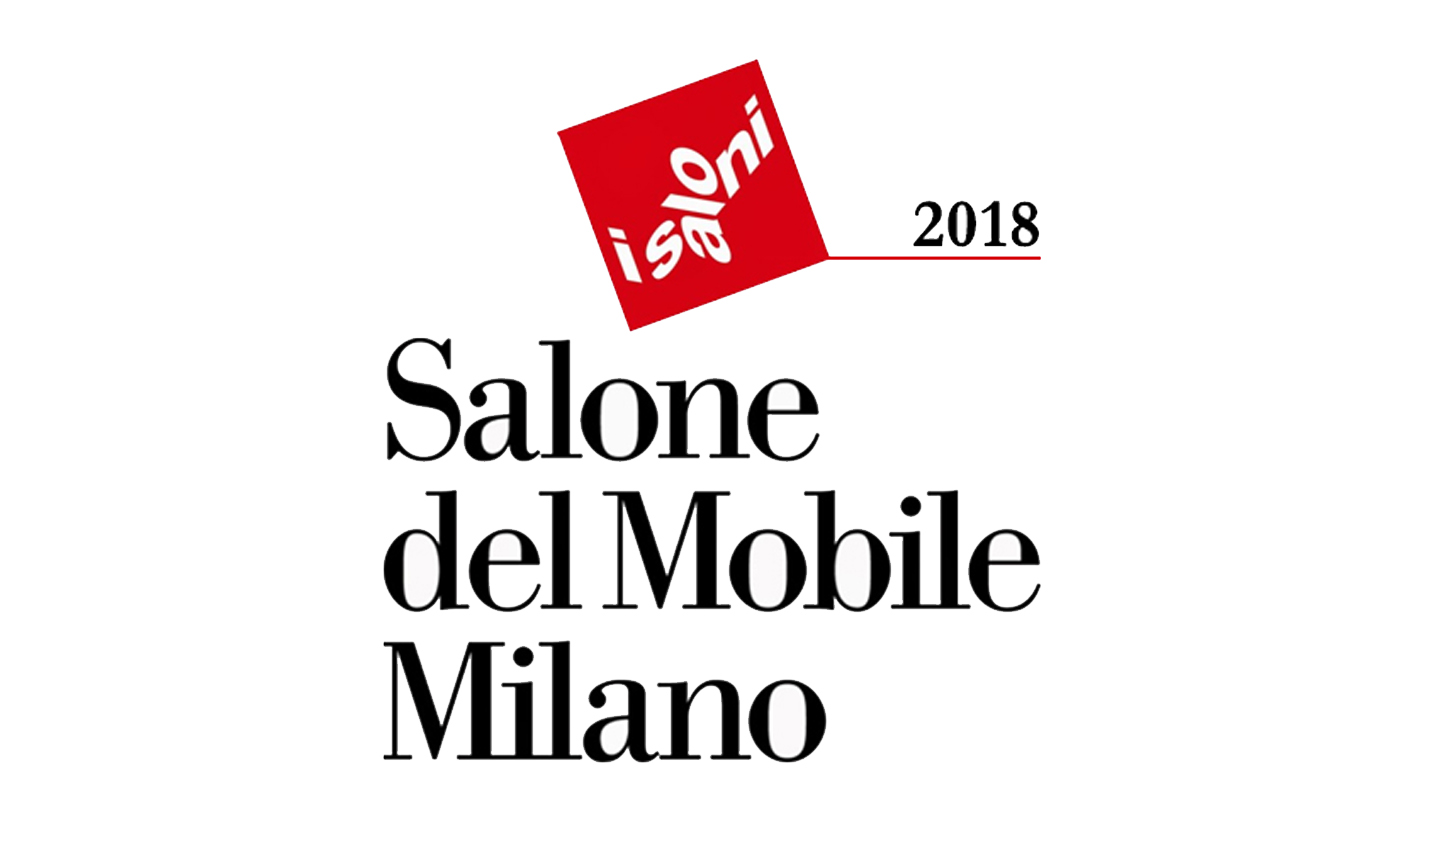 Meet The Winners of the CovetED Awards Presented at iSaloni 2018 best museums in milan Milan Design Guide: Best Museums in Milan Meet The Winners of the CovetED Awards Presented at iSaloni 2018 01 best museums in milan Milan Design Guide: Best Museums in Milan Meet The Winners of the CovetED Awards Presented at iSaloni 2018 01